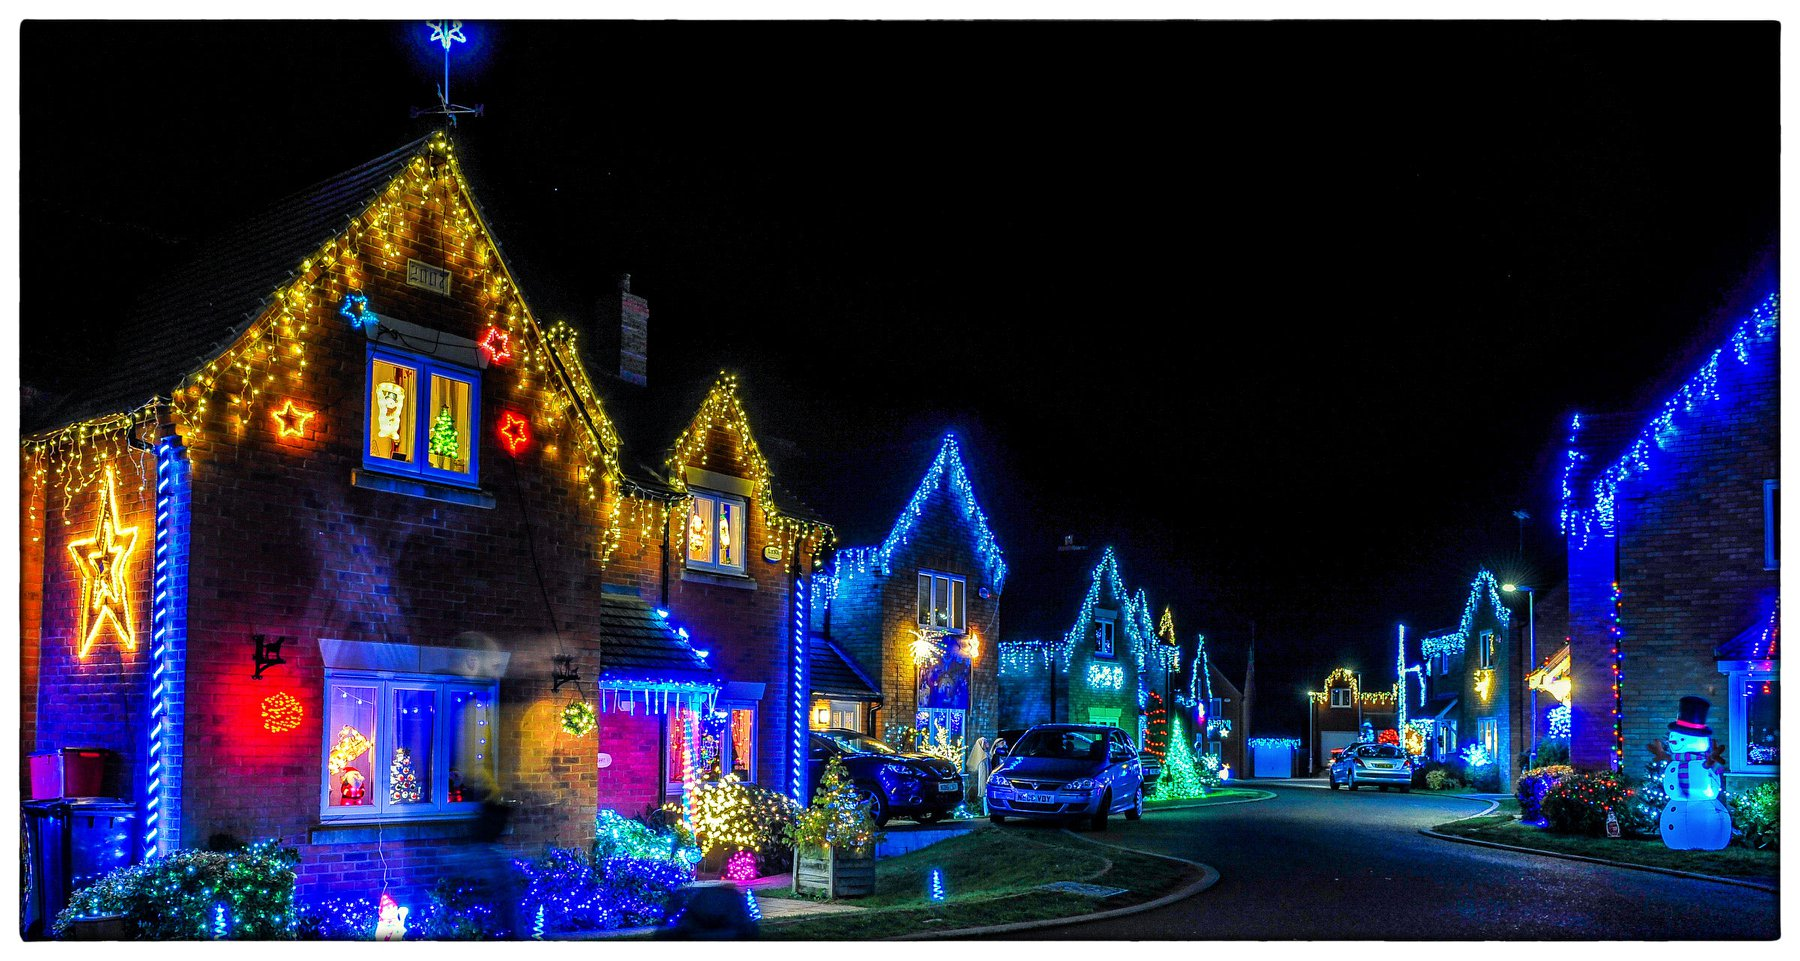 1st Best Community Display - Hollow Wood Road Lights - Kettering